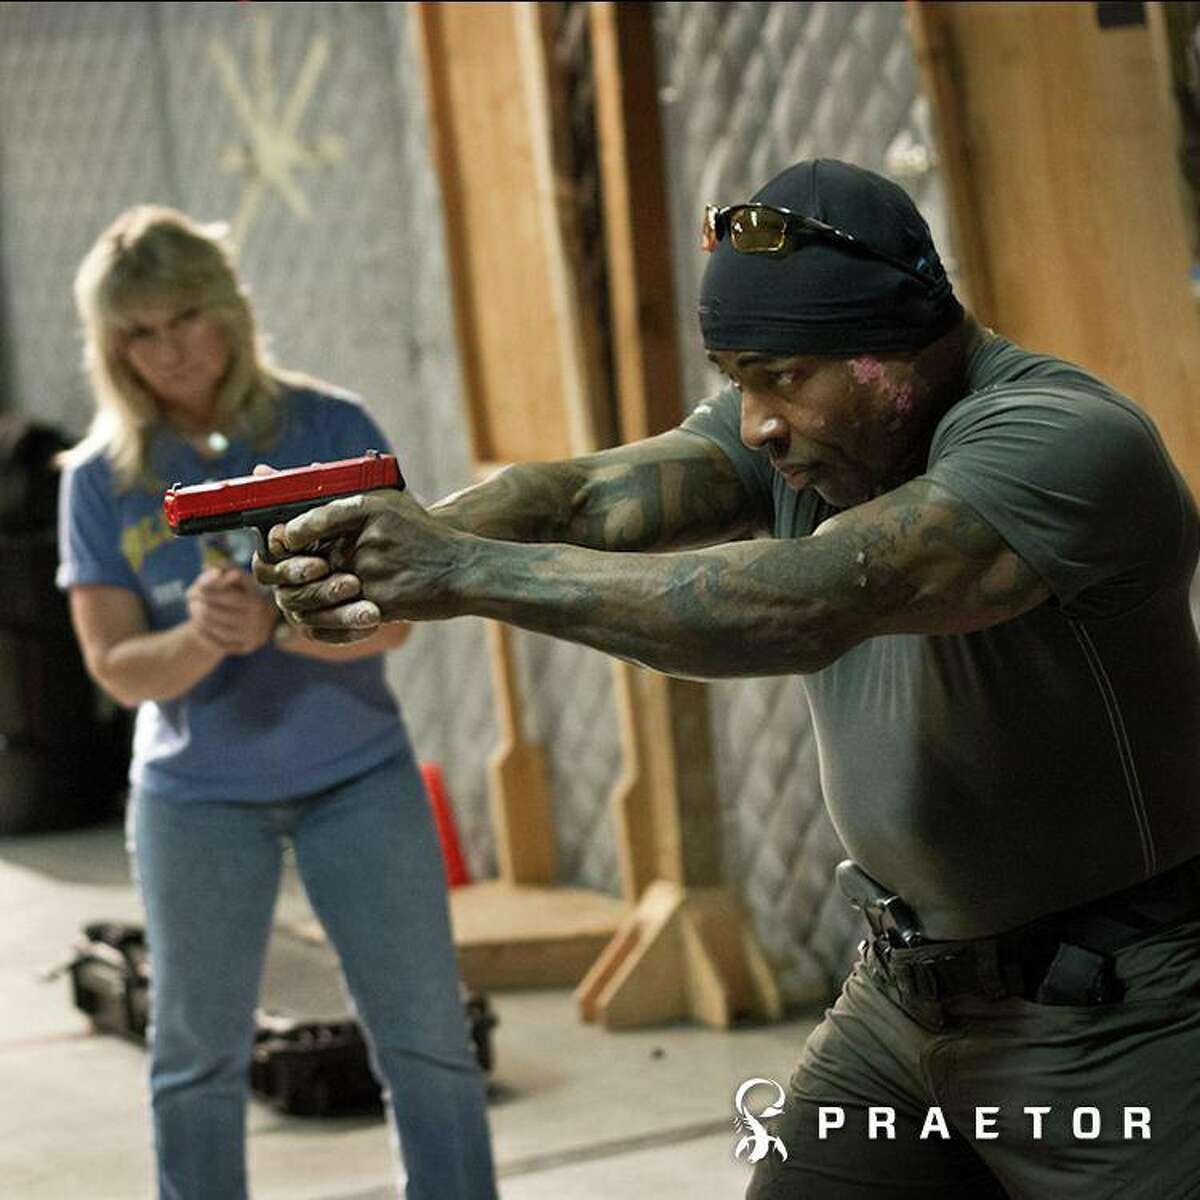 King County Sheriff's Deputy Darrion Holiwell is shown in a publicity photo for his firearms equipment and training business, Praetor Defense. He was arrested Thursday morning for investigation of promoting prostitution.